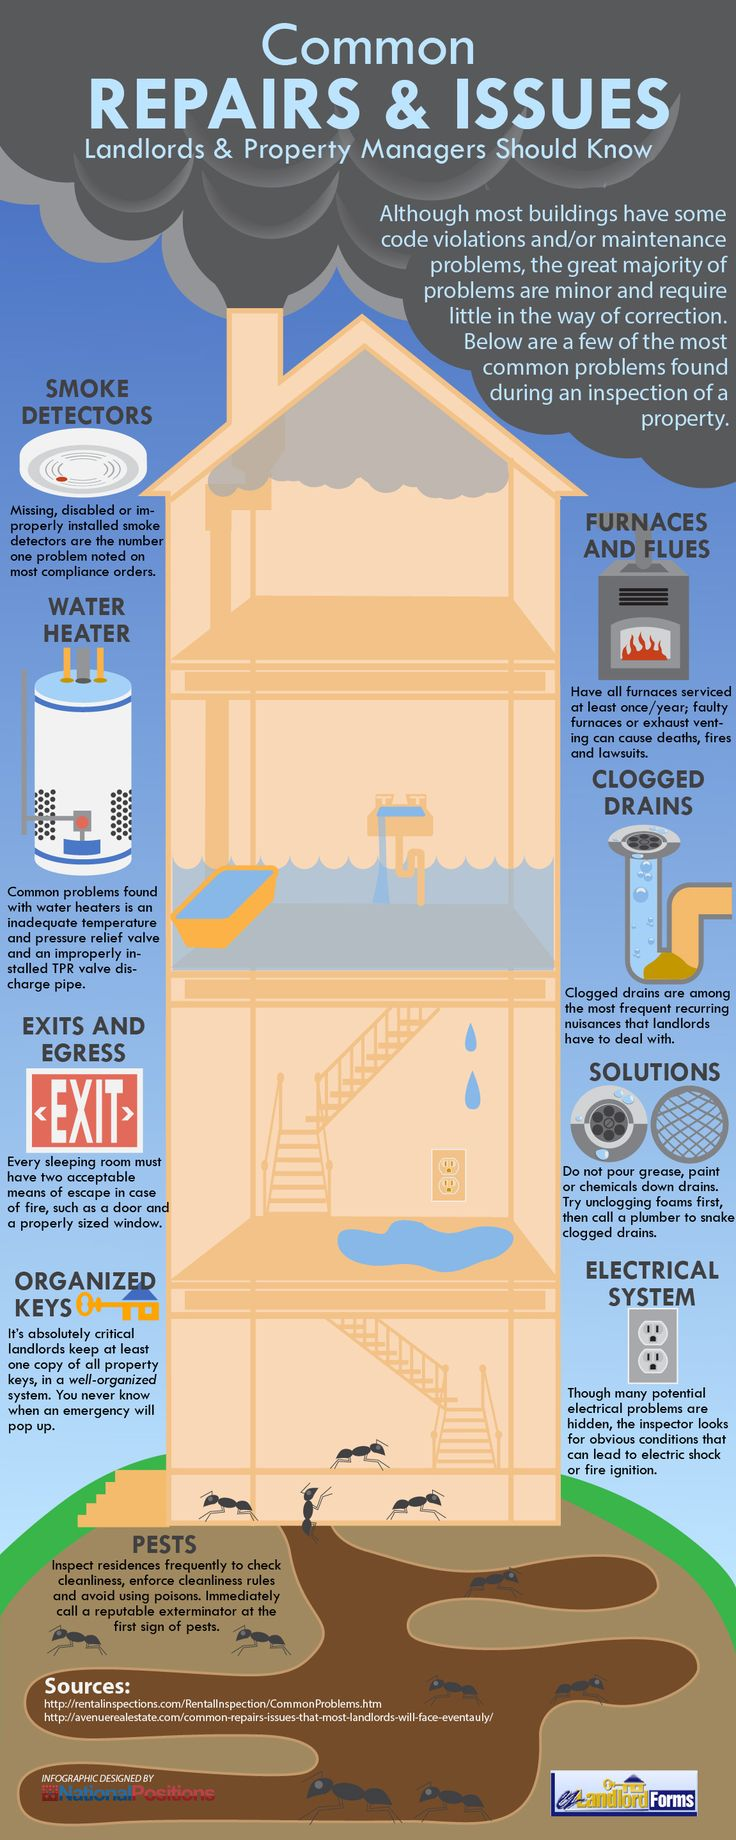 How a Defective Furnace Can Affect a Landlord. For more information, call us at 970-389-4784 or visit us at http://www.summit-county-services.com/property-maintenance--management.html